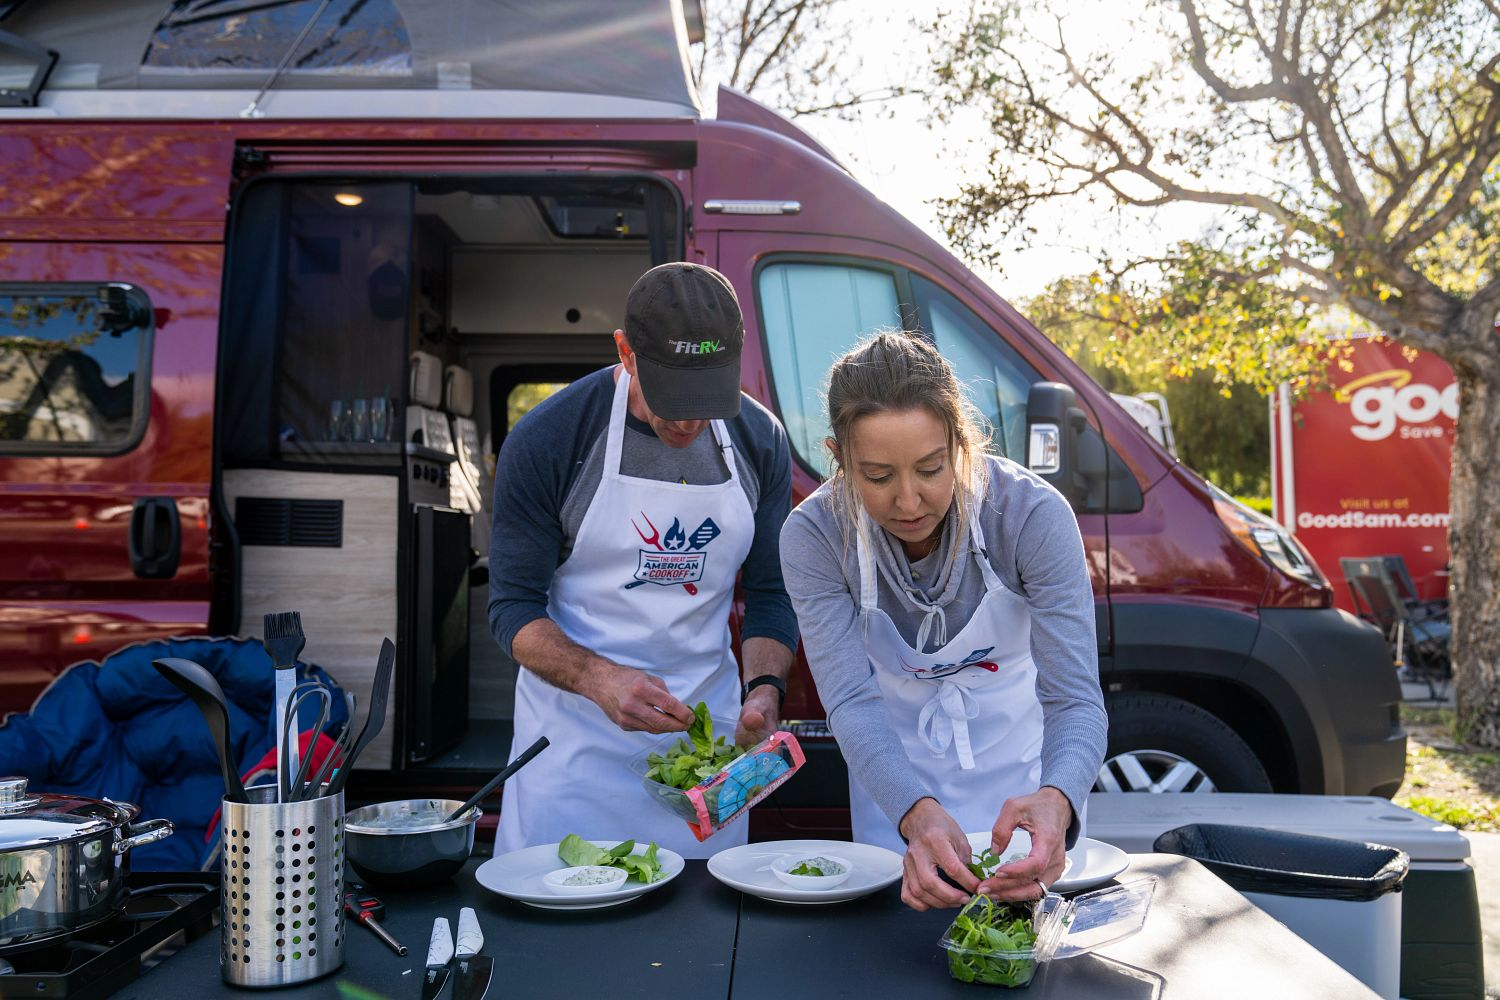 Stef and James of the FitRV prepare food for The Great American Cookoff.